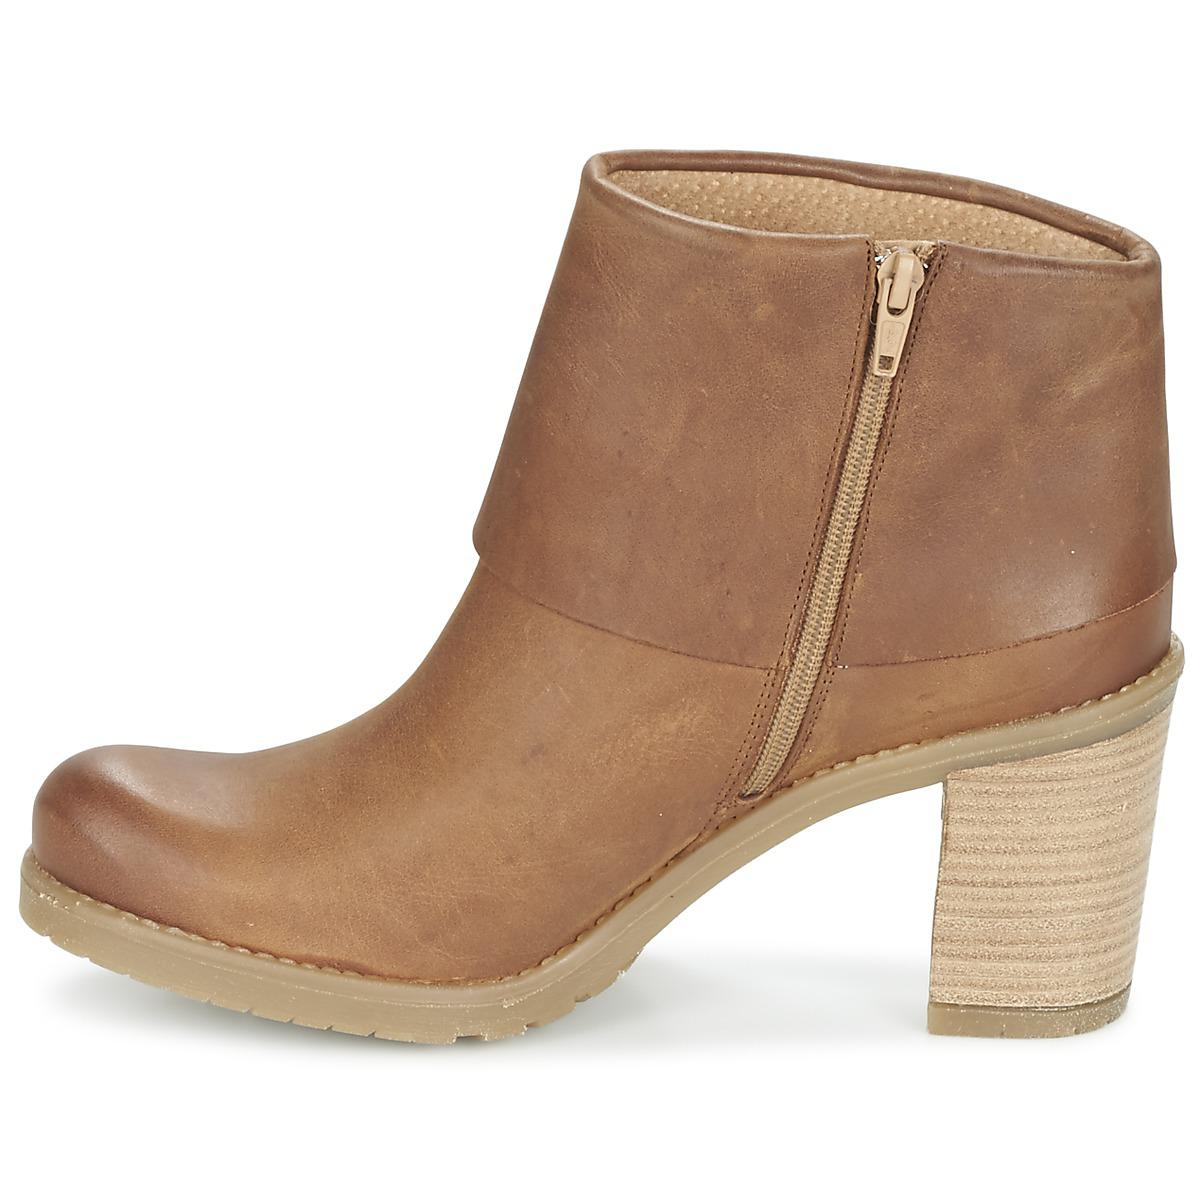 Casual Attitude Leather Concolor Women's Low Ankle Boots In Brown - Save 6%